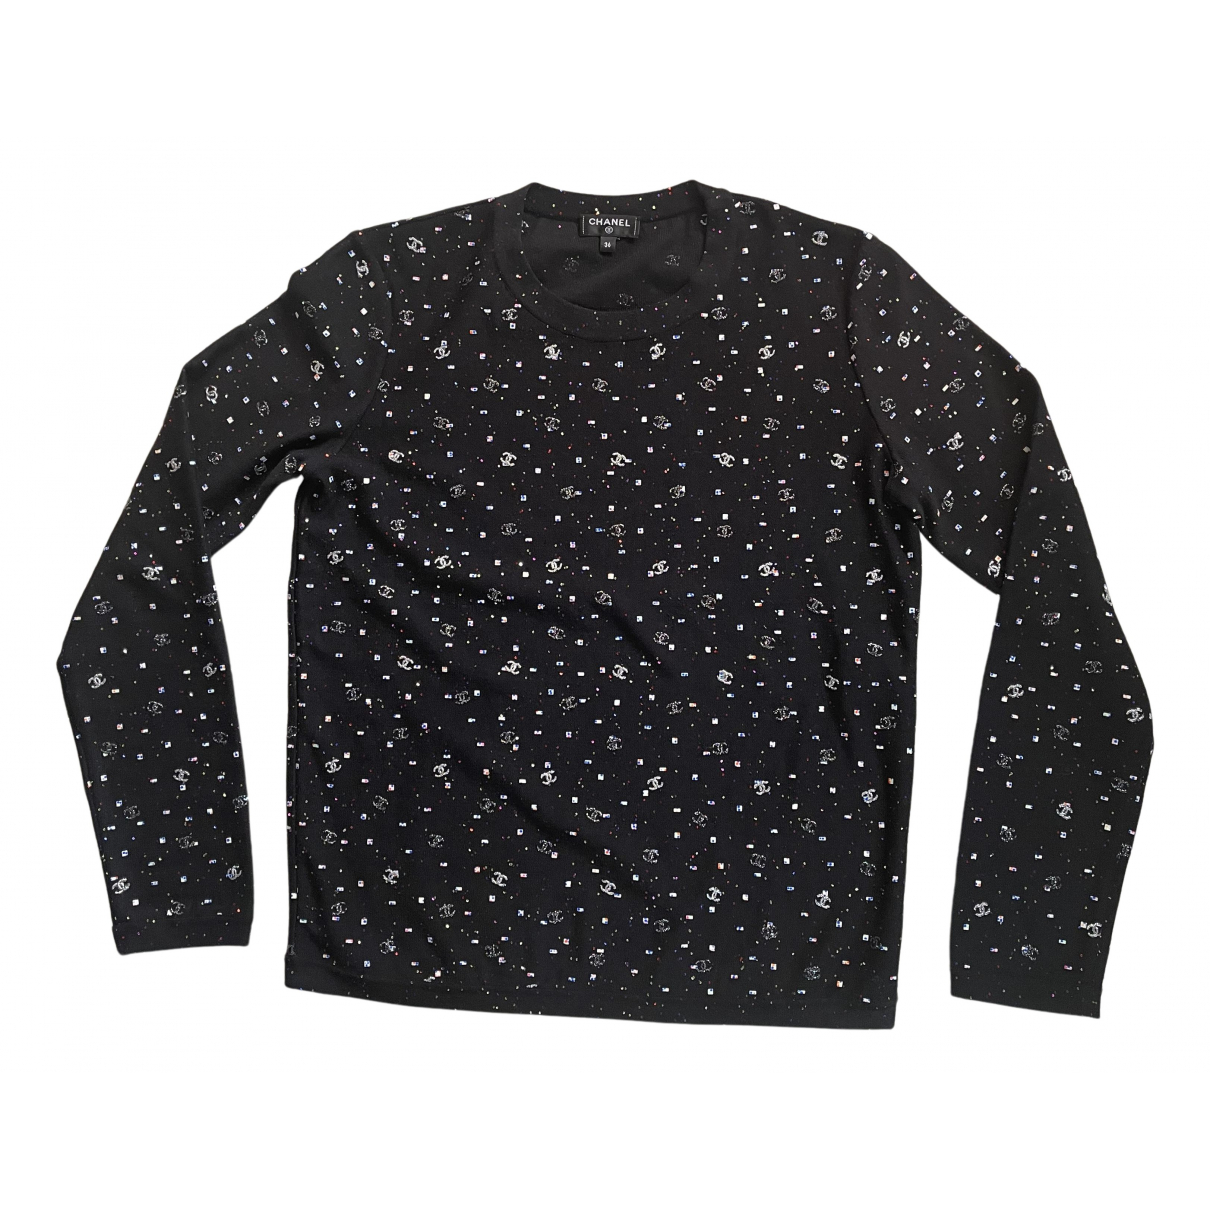 Chanel N Black Cotton Top for Women